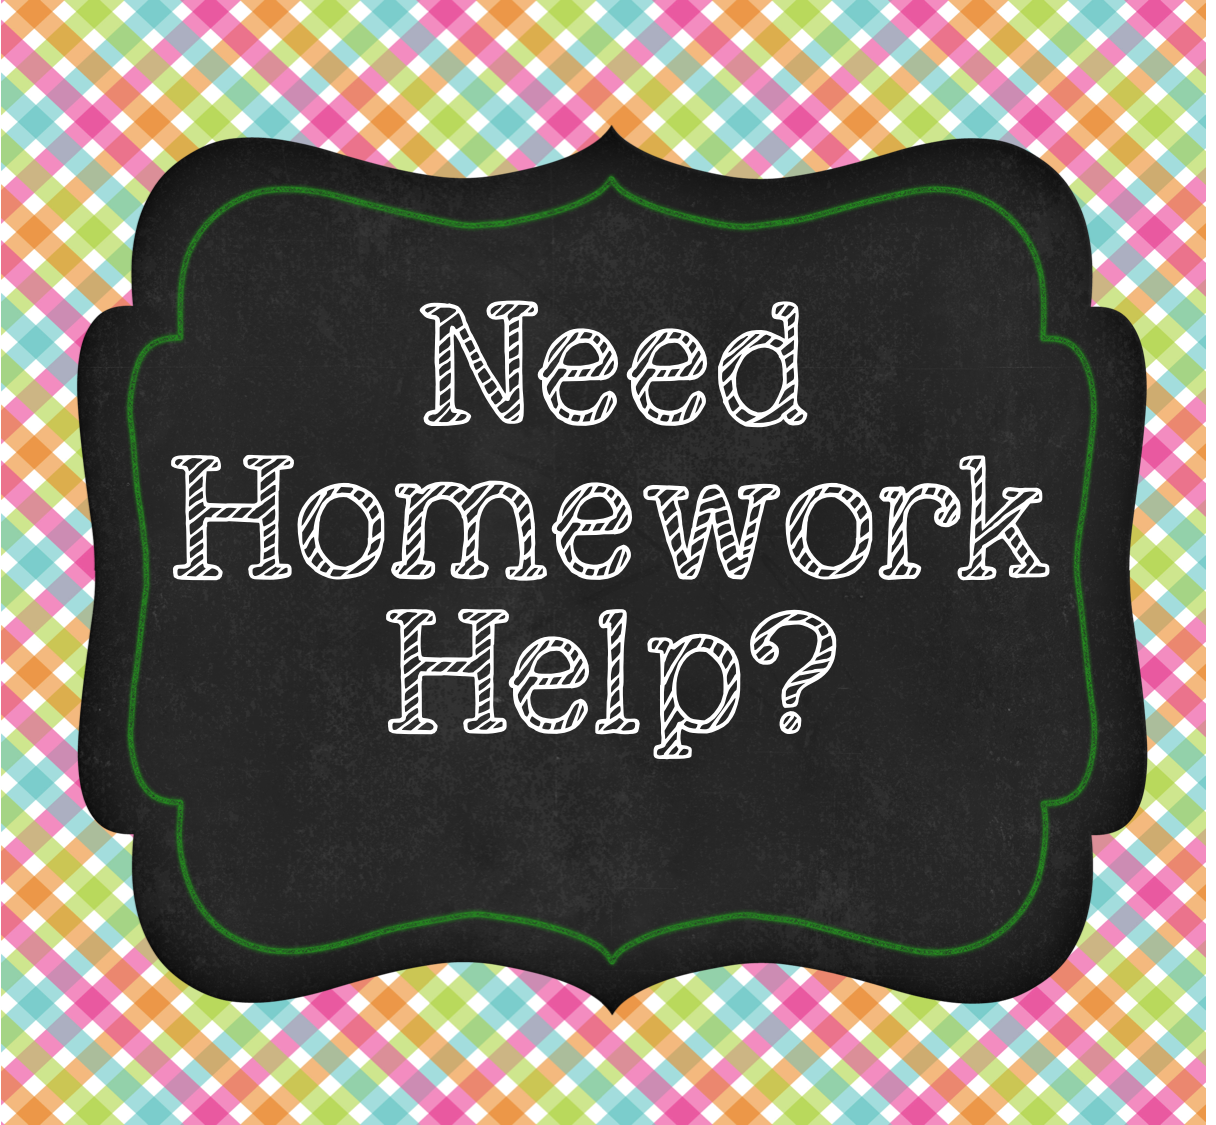 I need help with homework